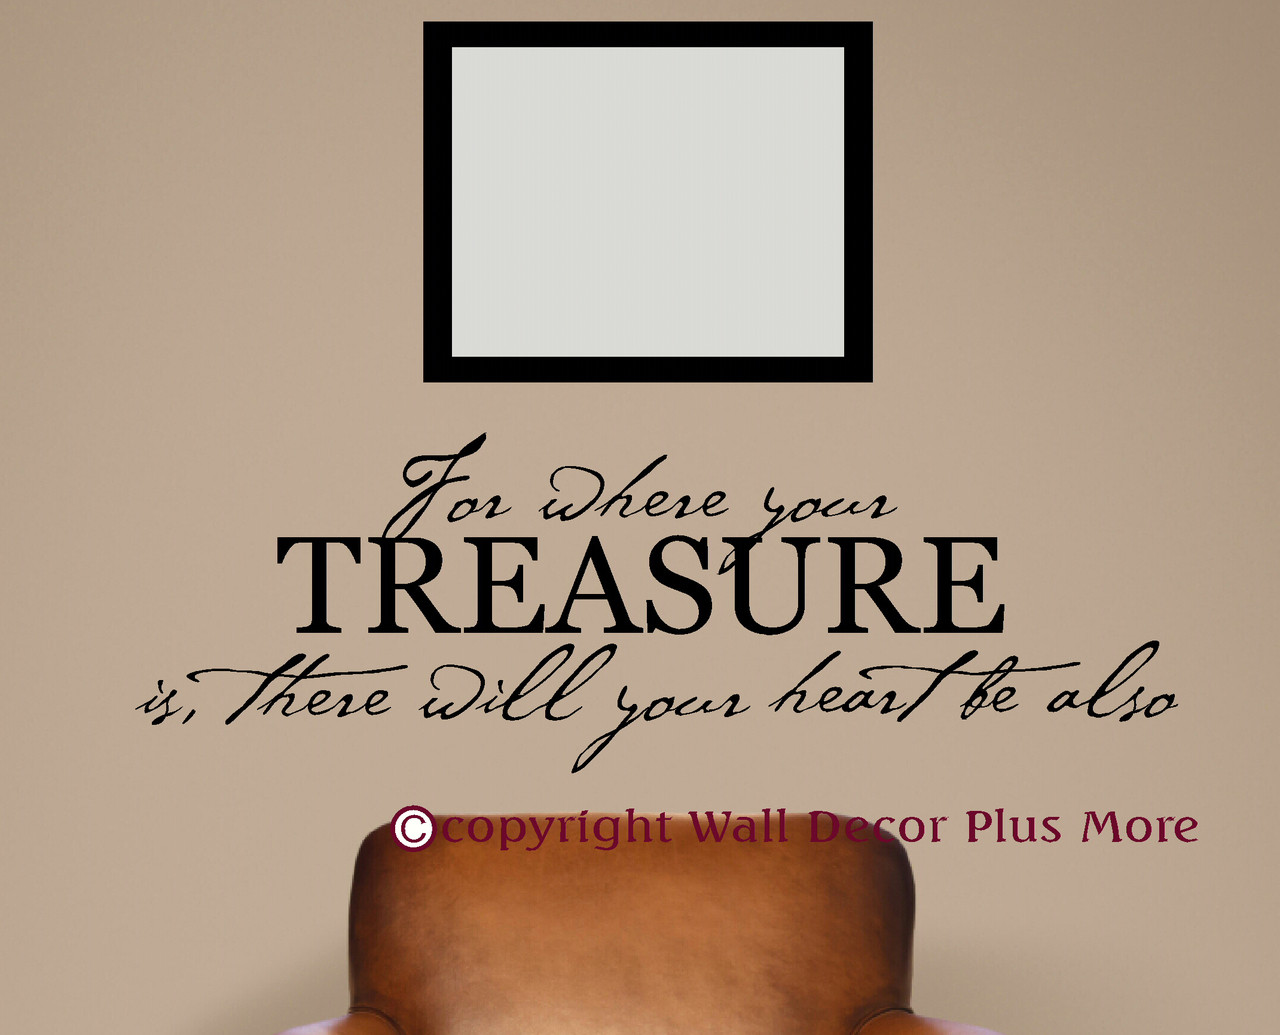 Where your treasure is heart will be also bible verse wall heart will be also bible verse wall sticker decals wall loading zoom amipublicfo Gallery